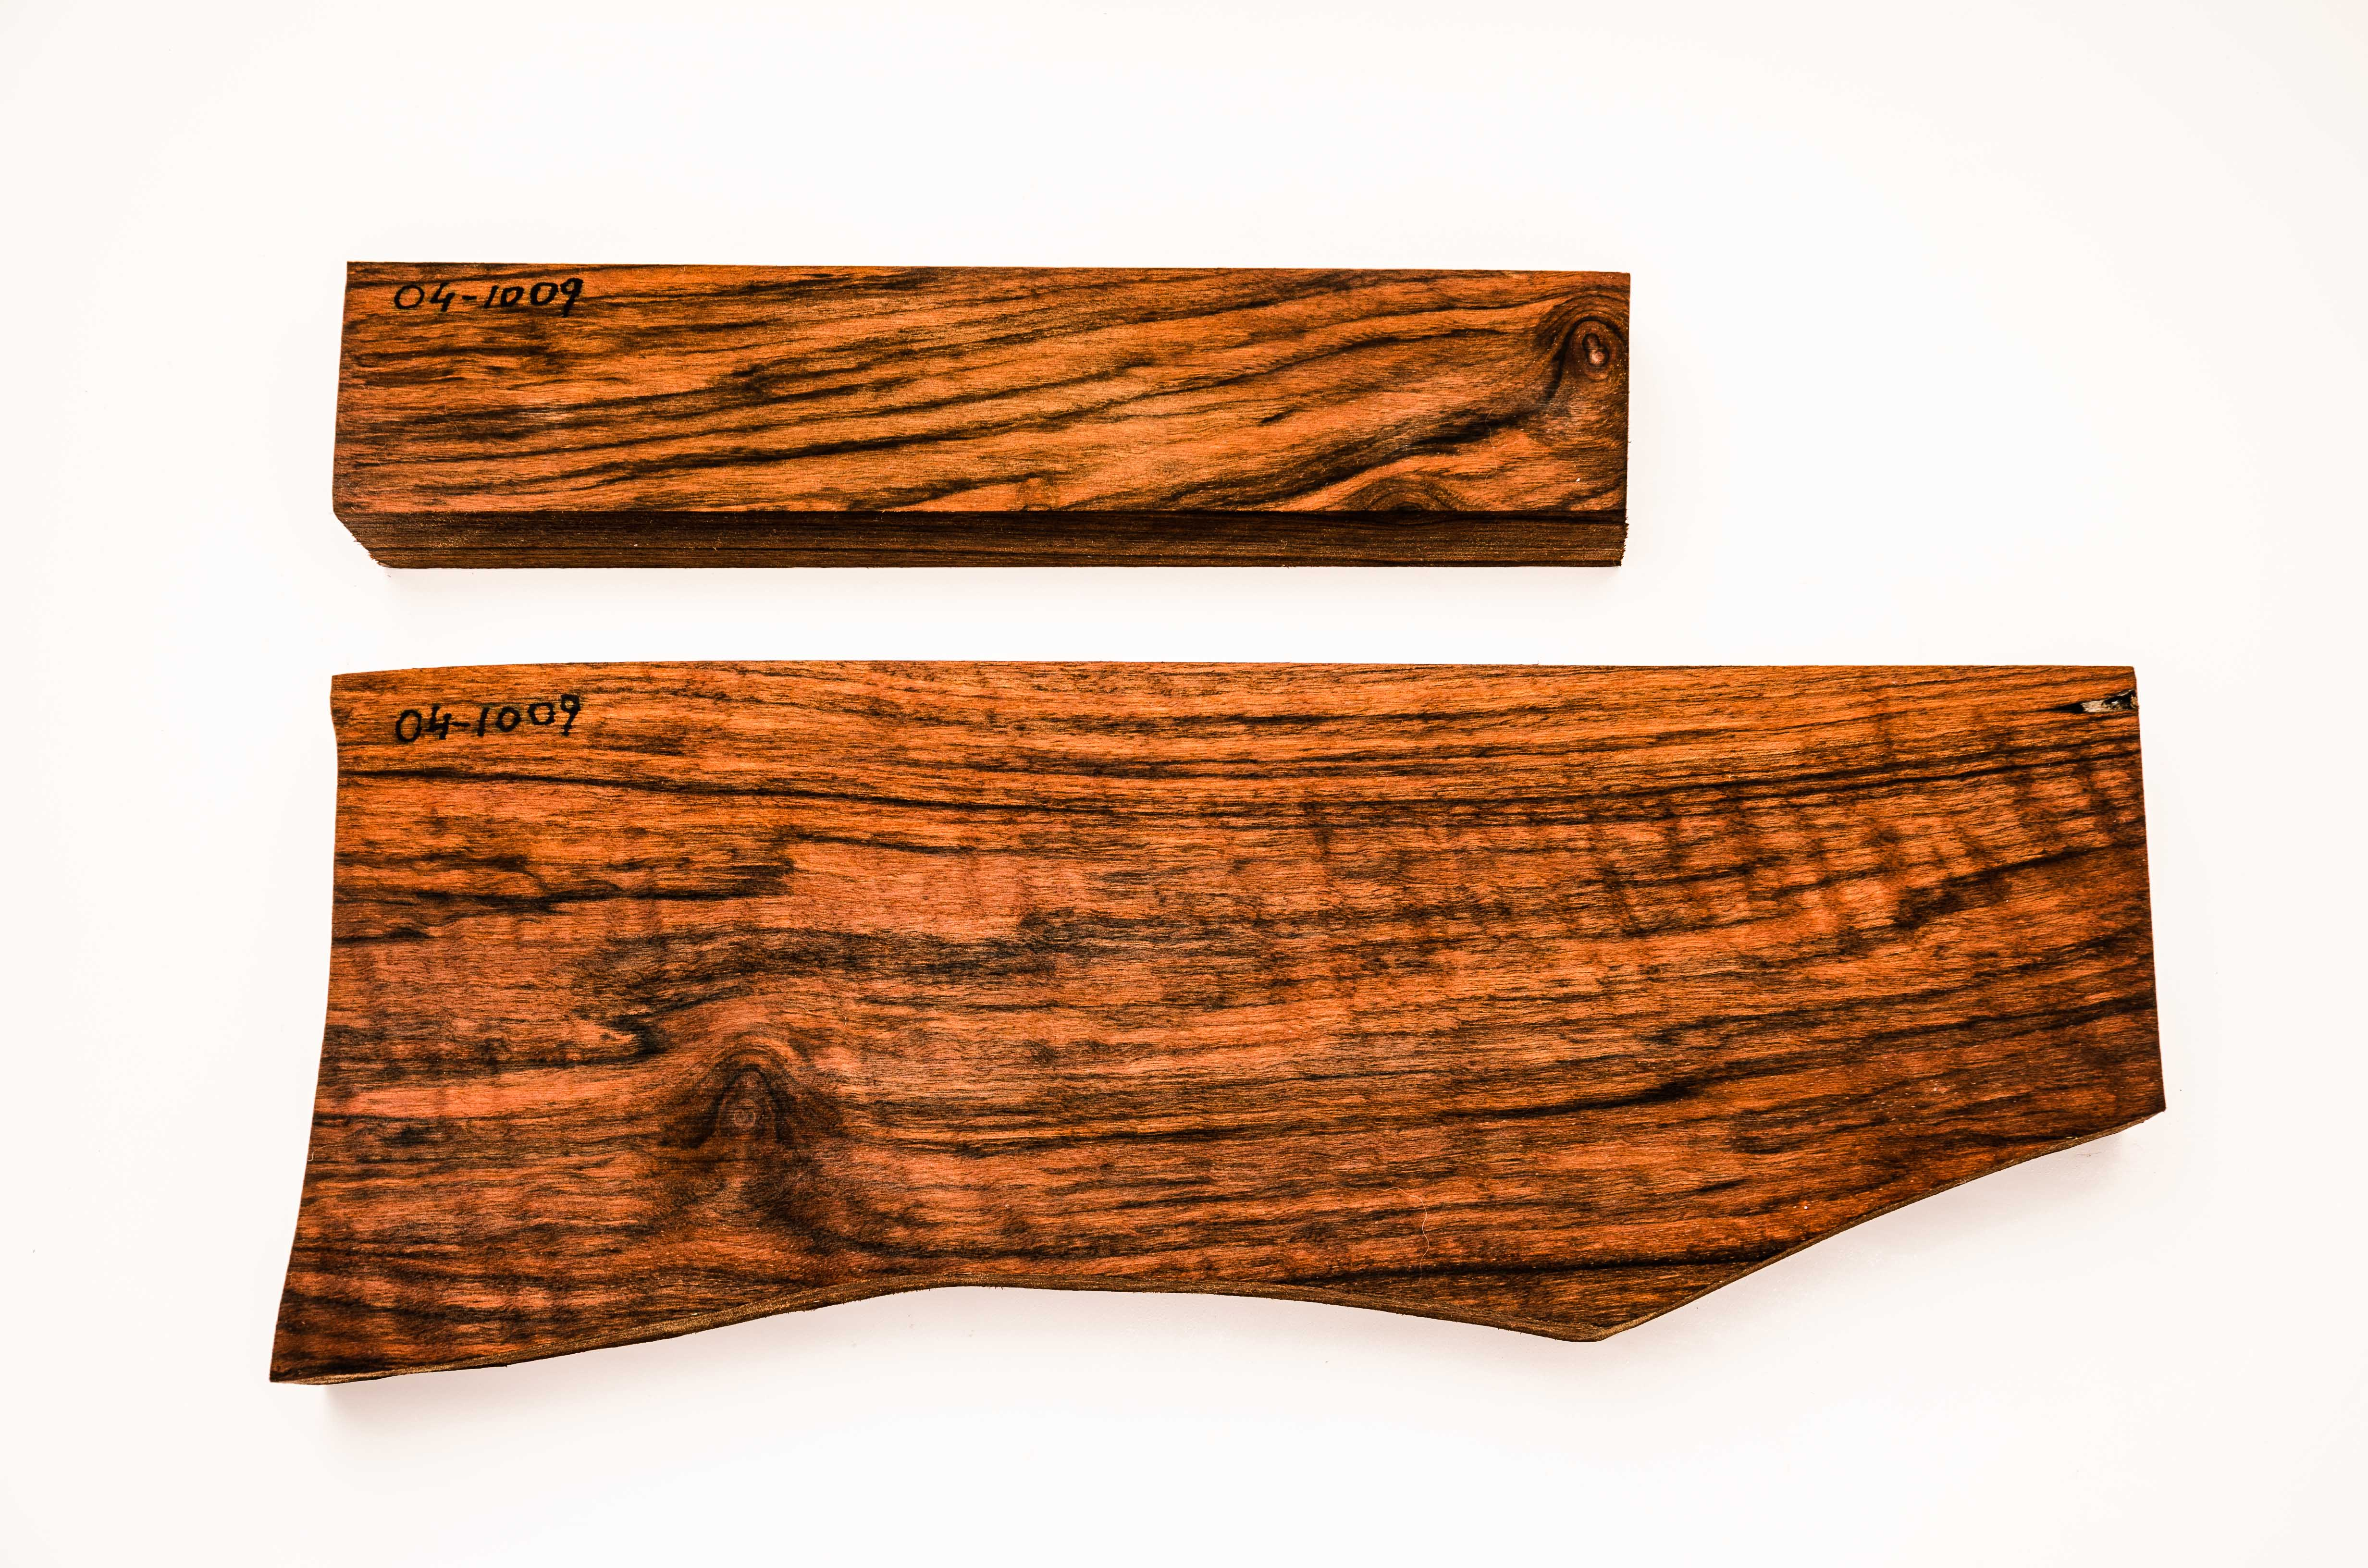 walnut_stock_blanks_for_guns_and_rifles-0448